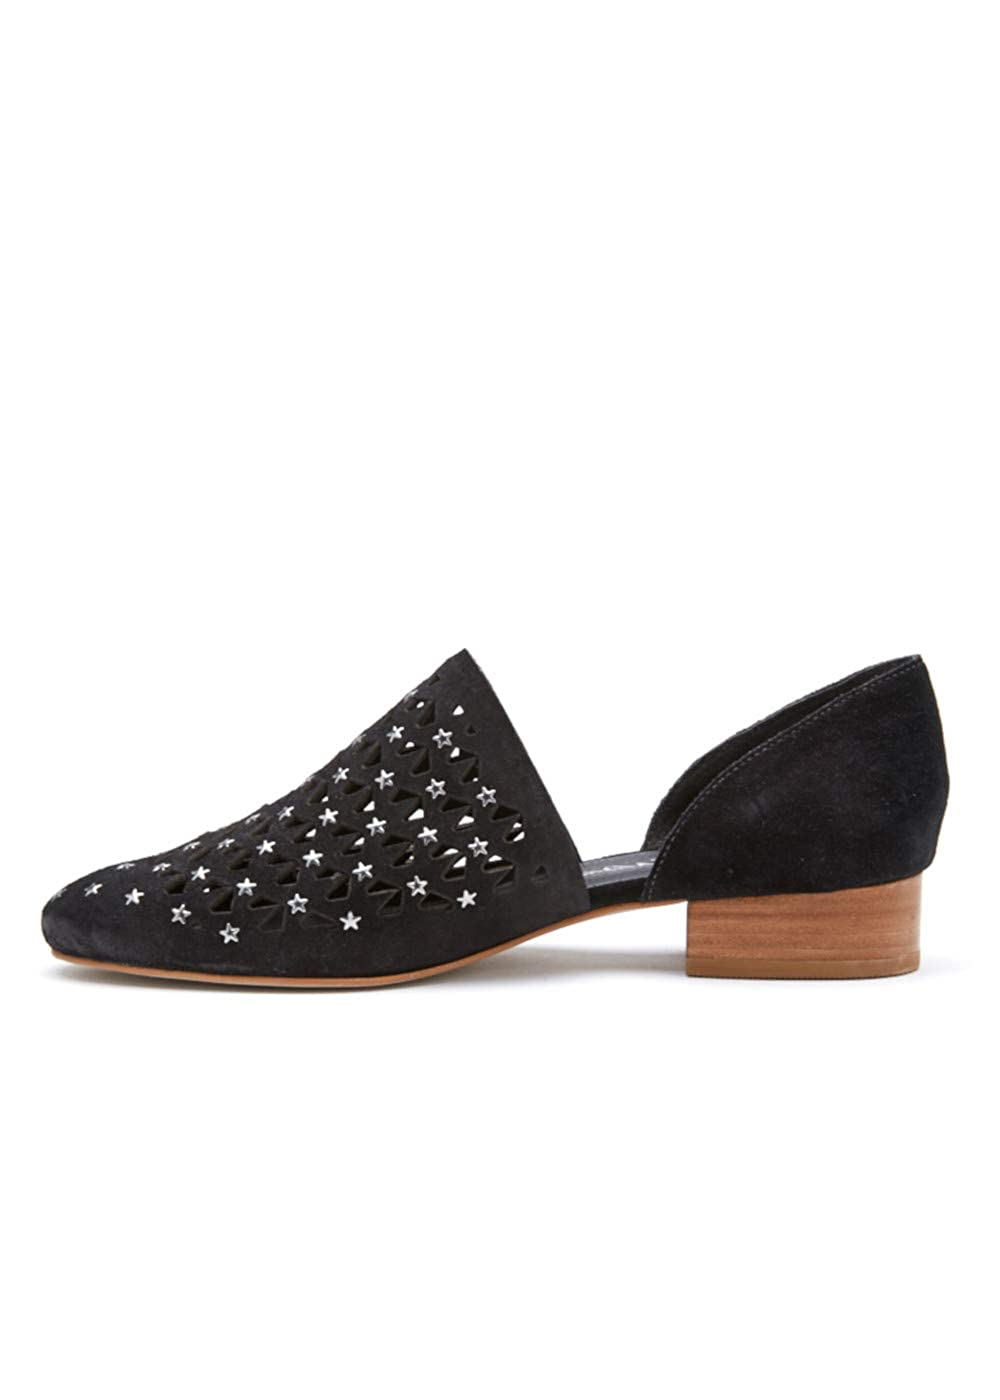 Matisse Womens Constellation Black Leather Star Studded Flats